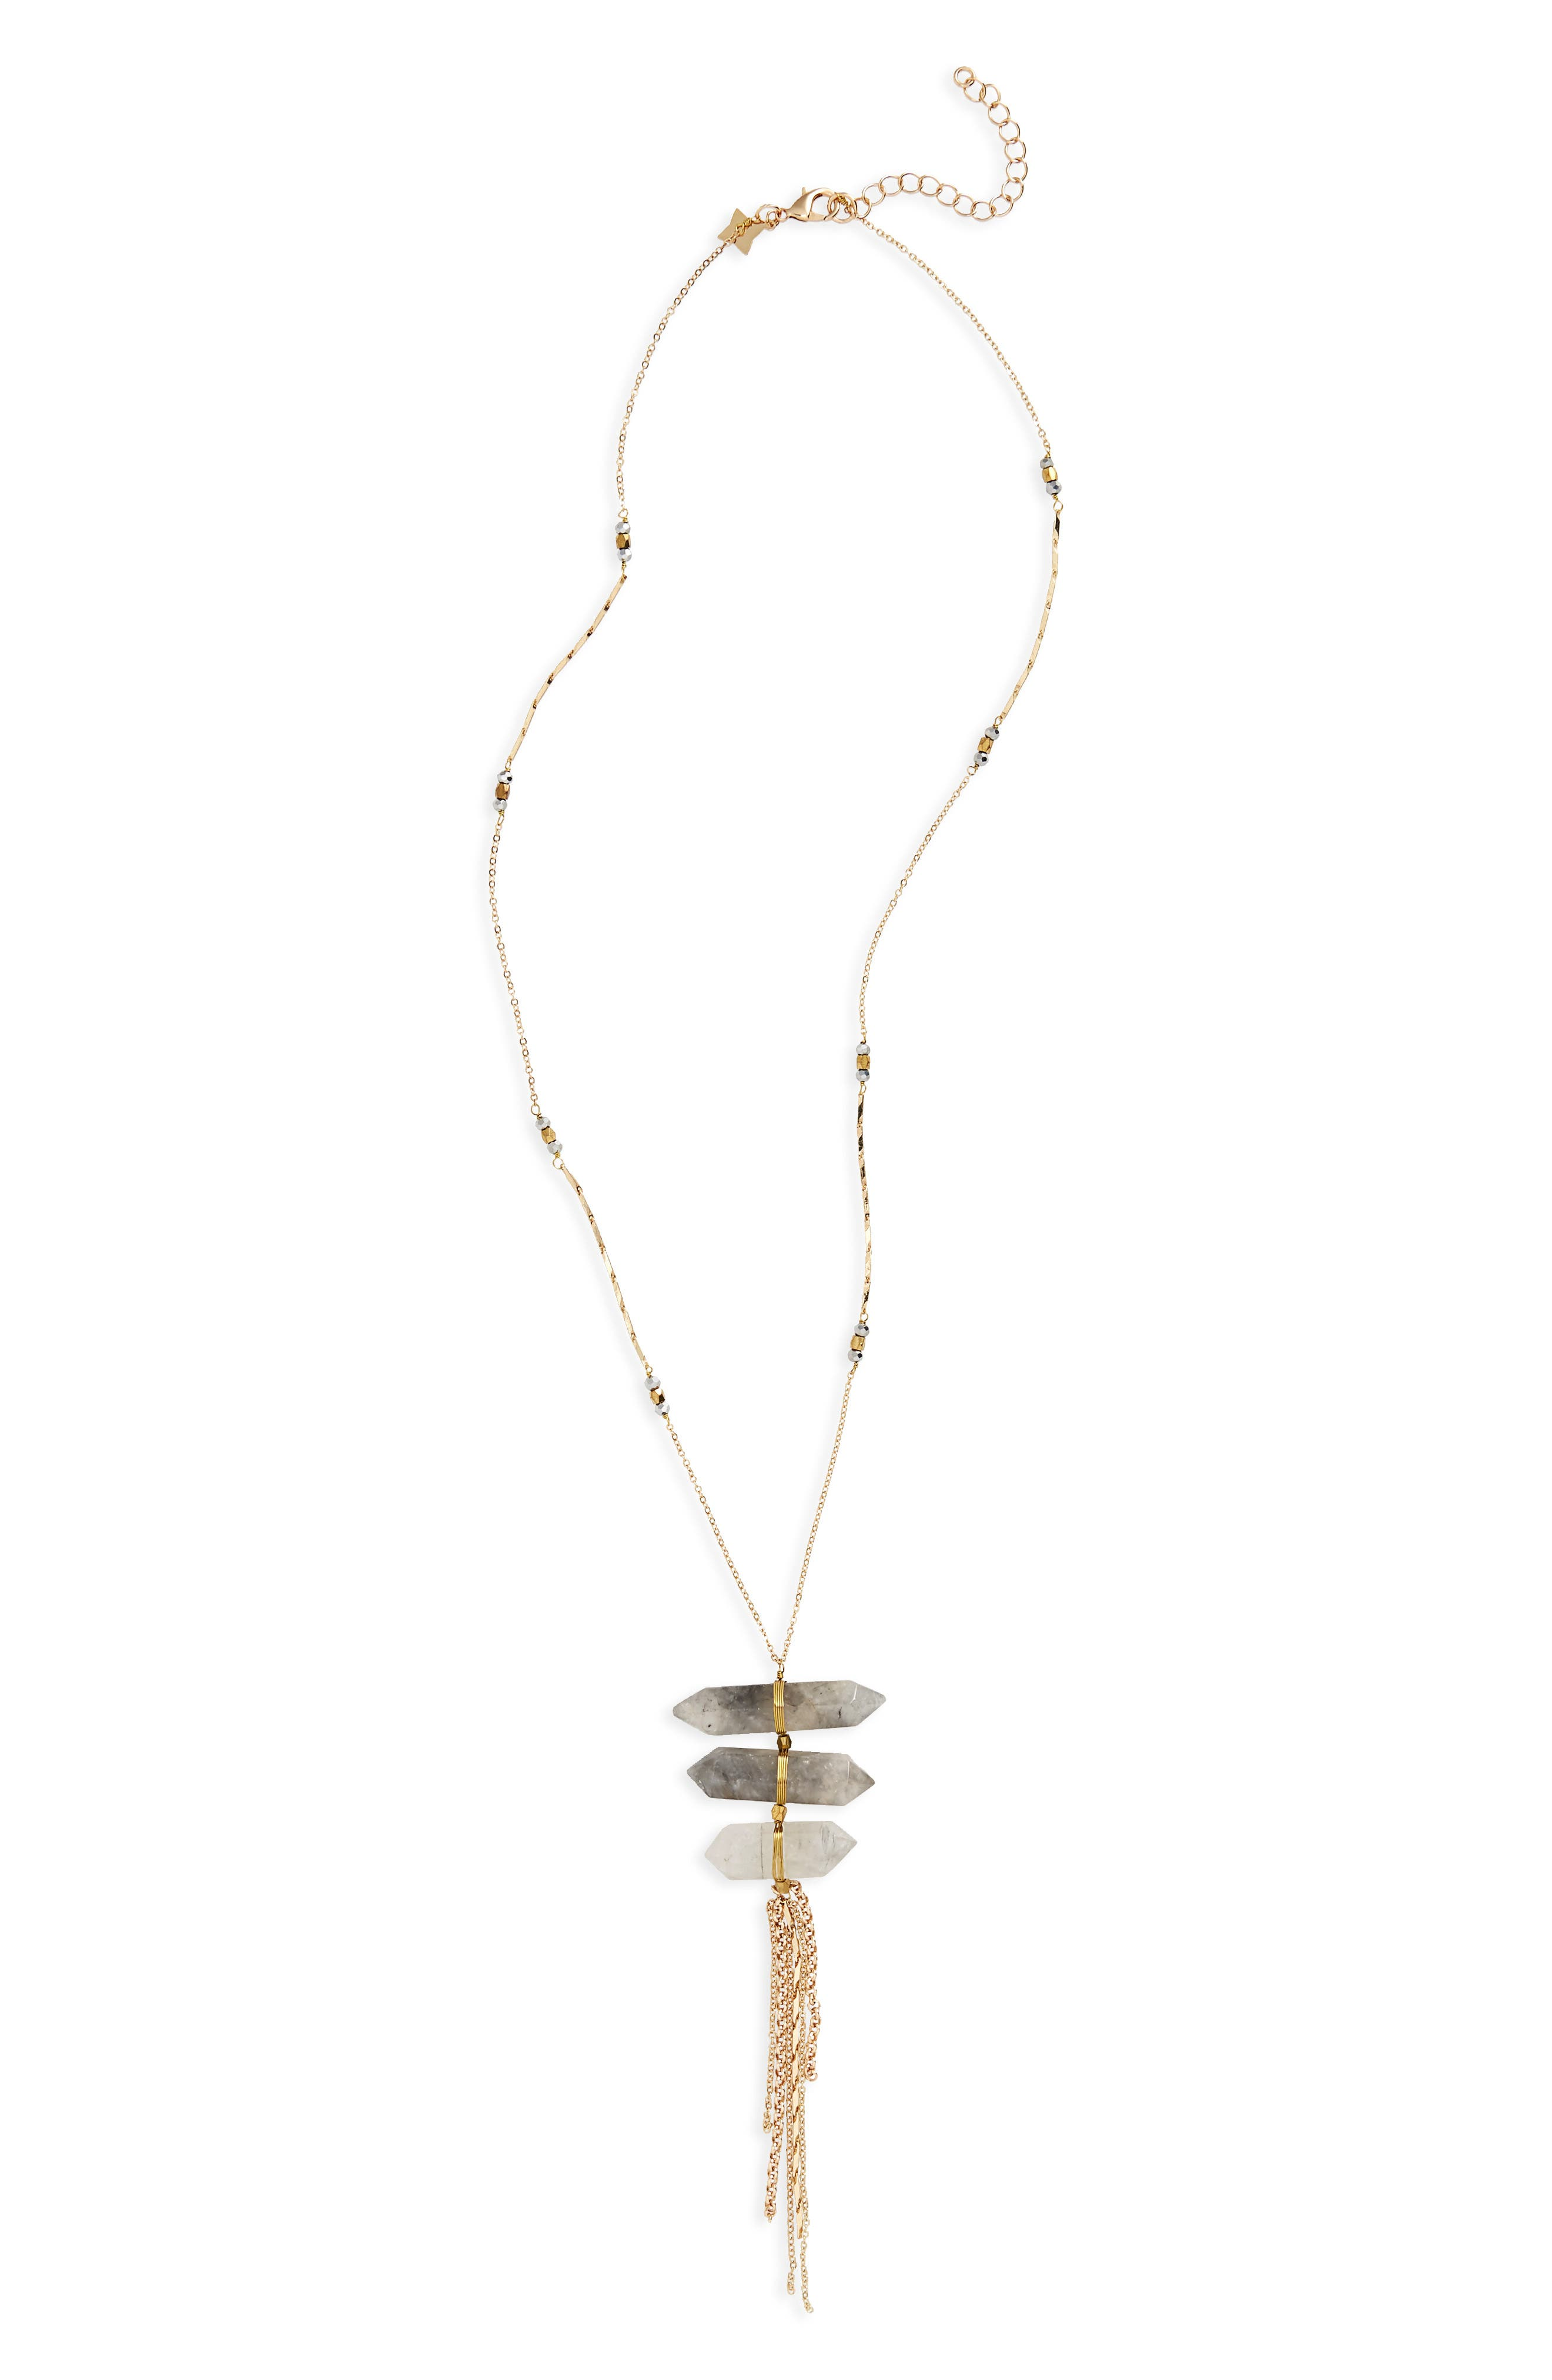 Panacea Tassel Necklace